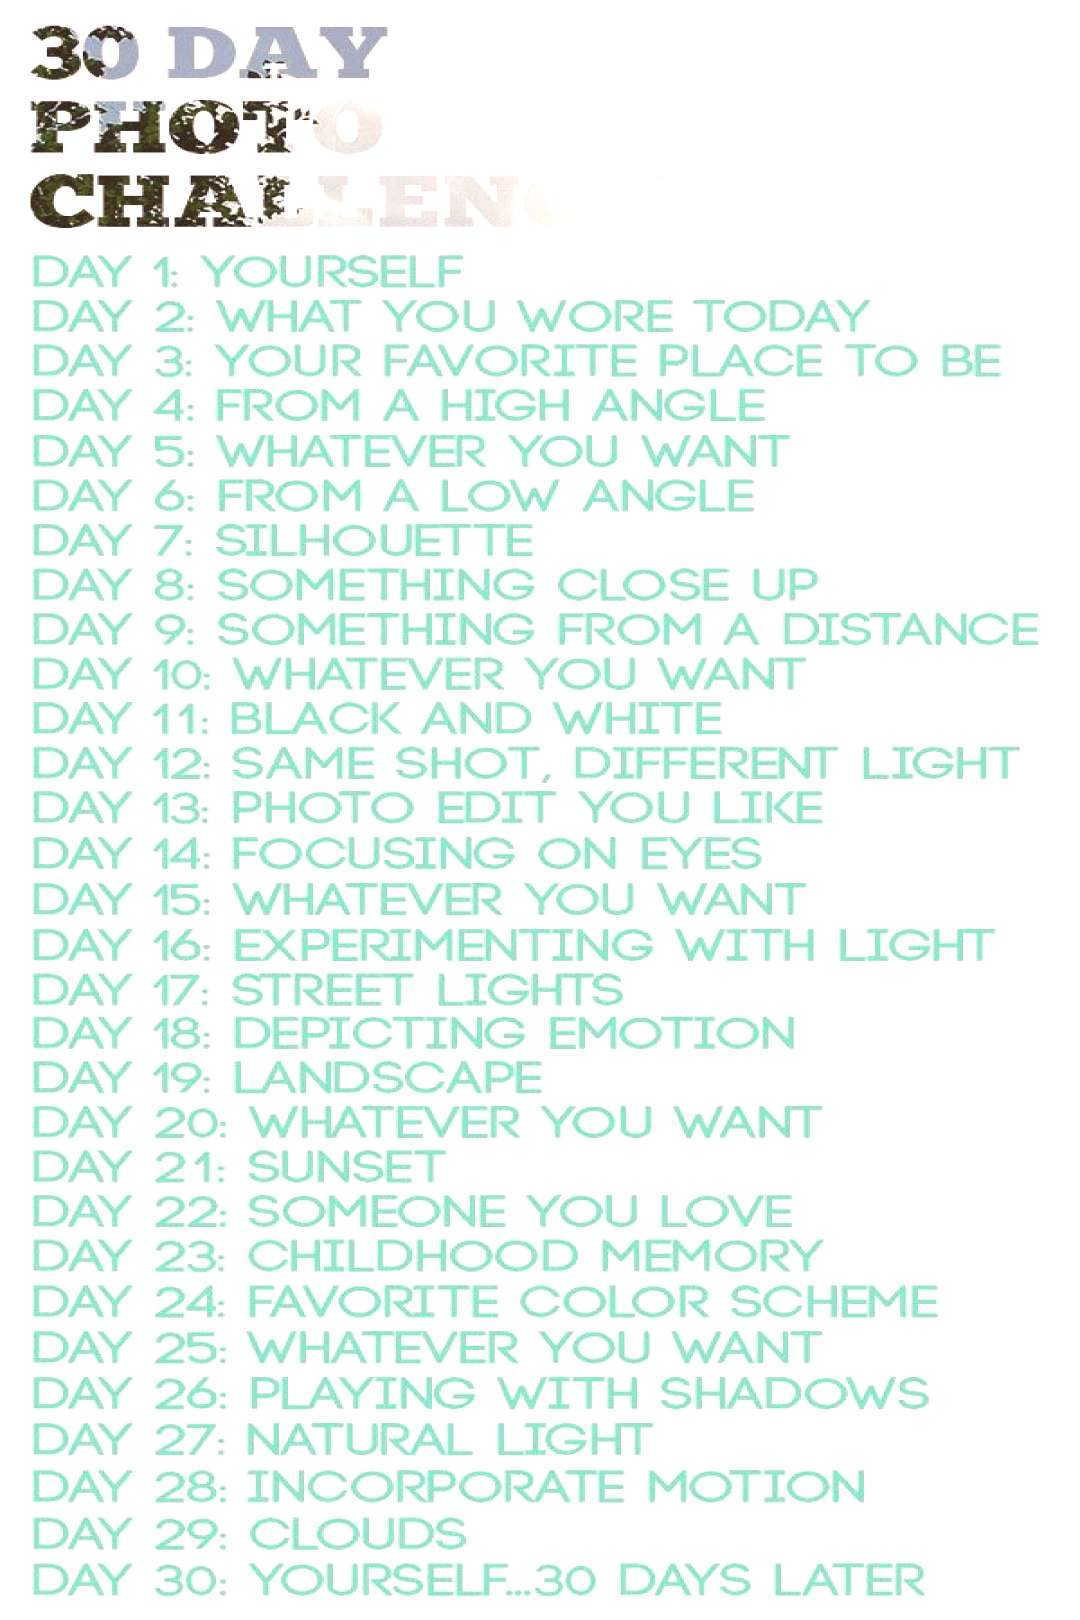 Love the idea, if not ffor a public contest, its still a great list to do on your own, or with a c